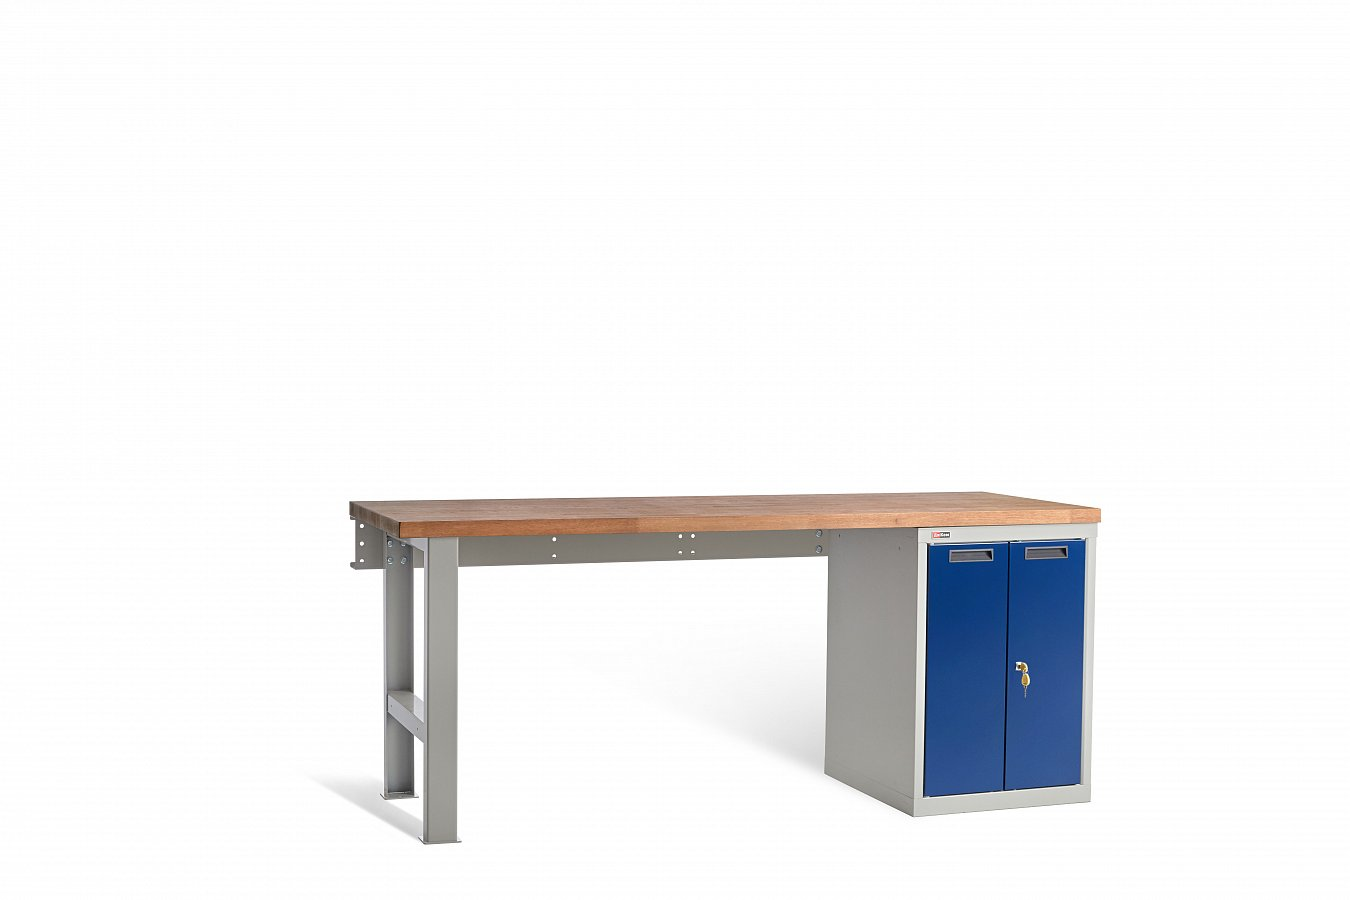 DiKom Workbench VS-200-03 (7)